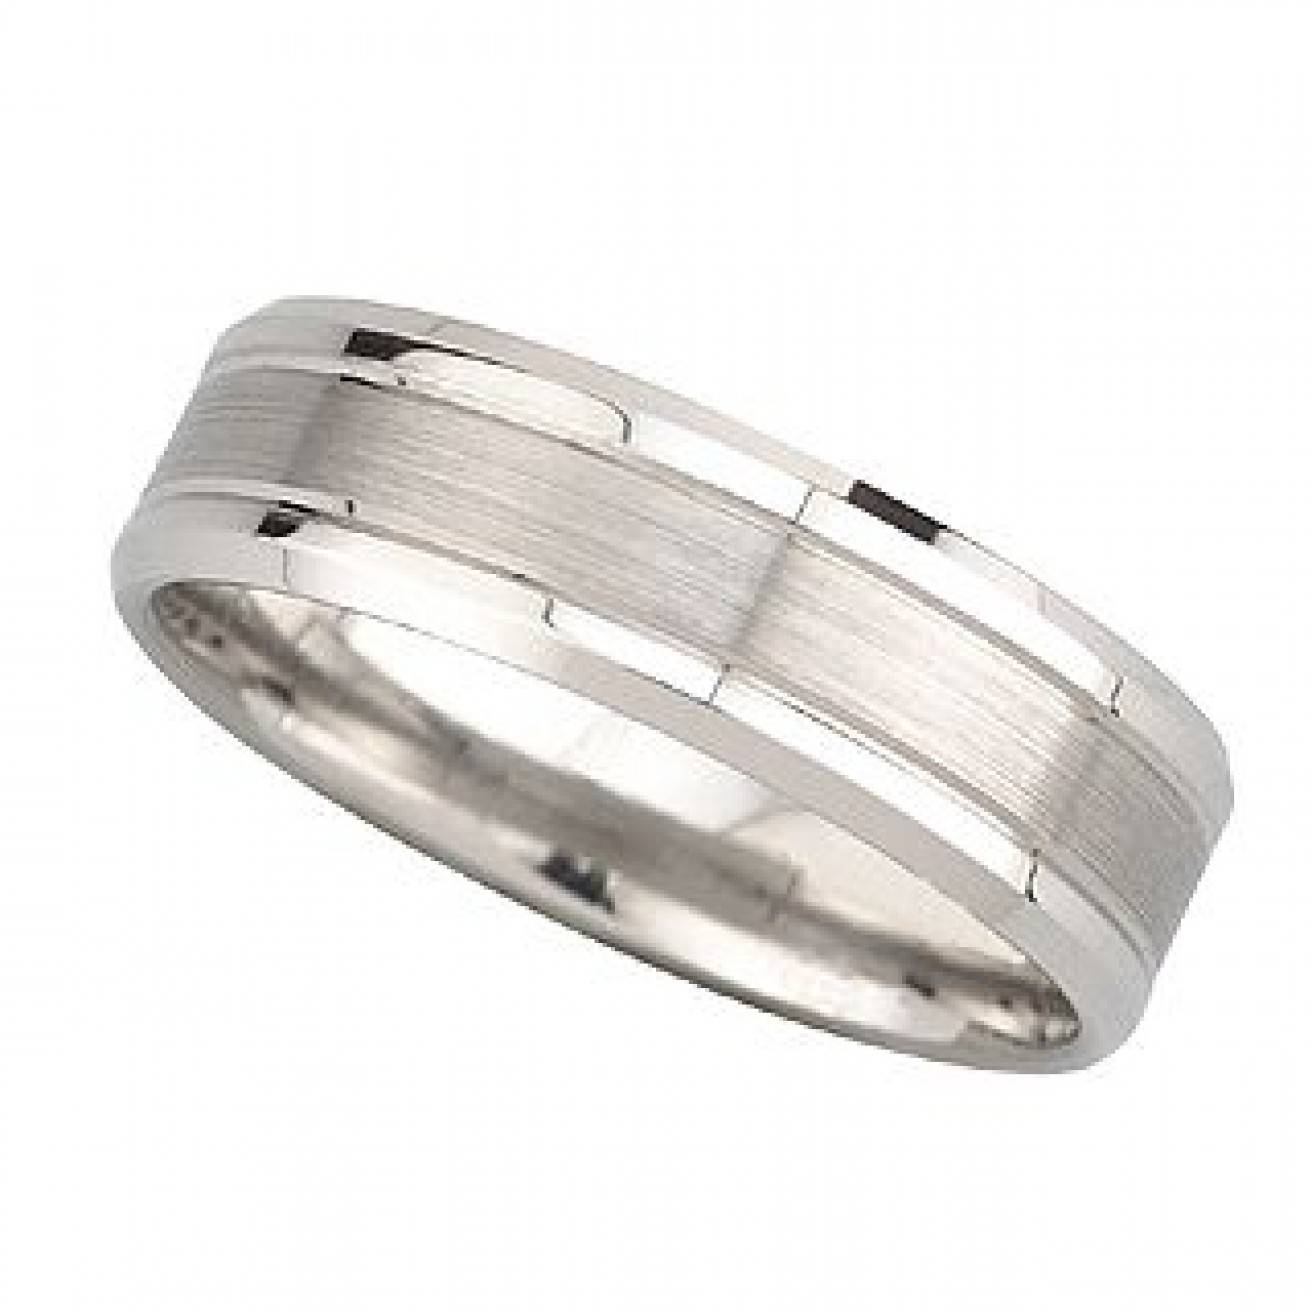 Palladium Wedding Rings Intended For Latest Palladium Wedding Bands For Women (View 6 of 15)